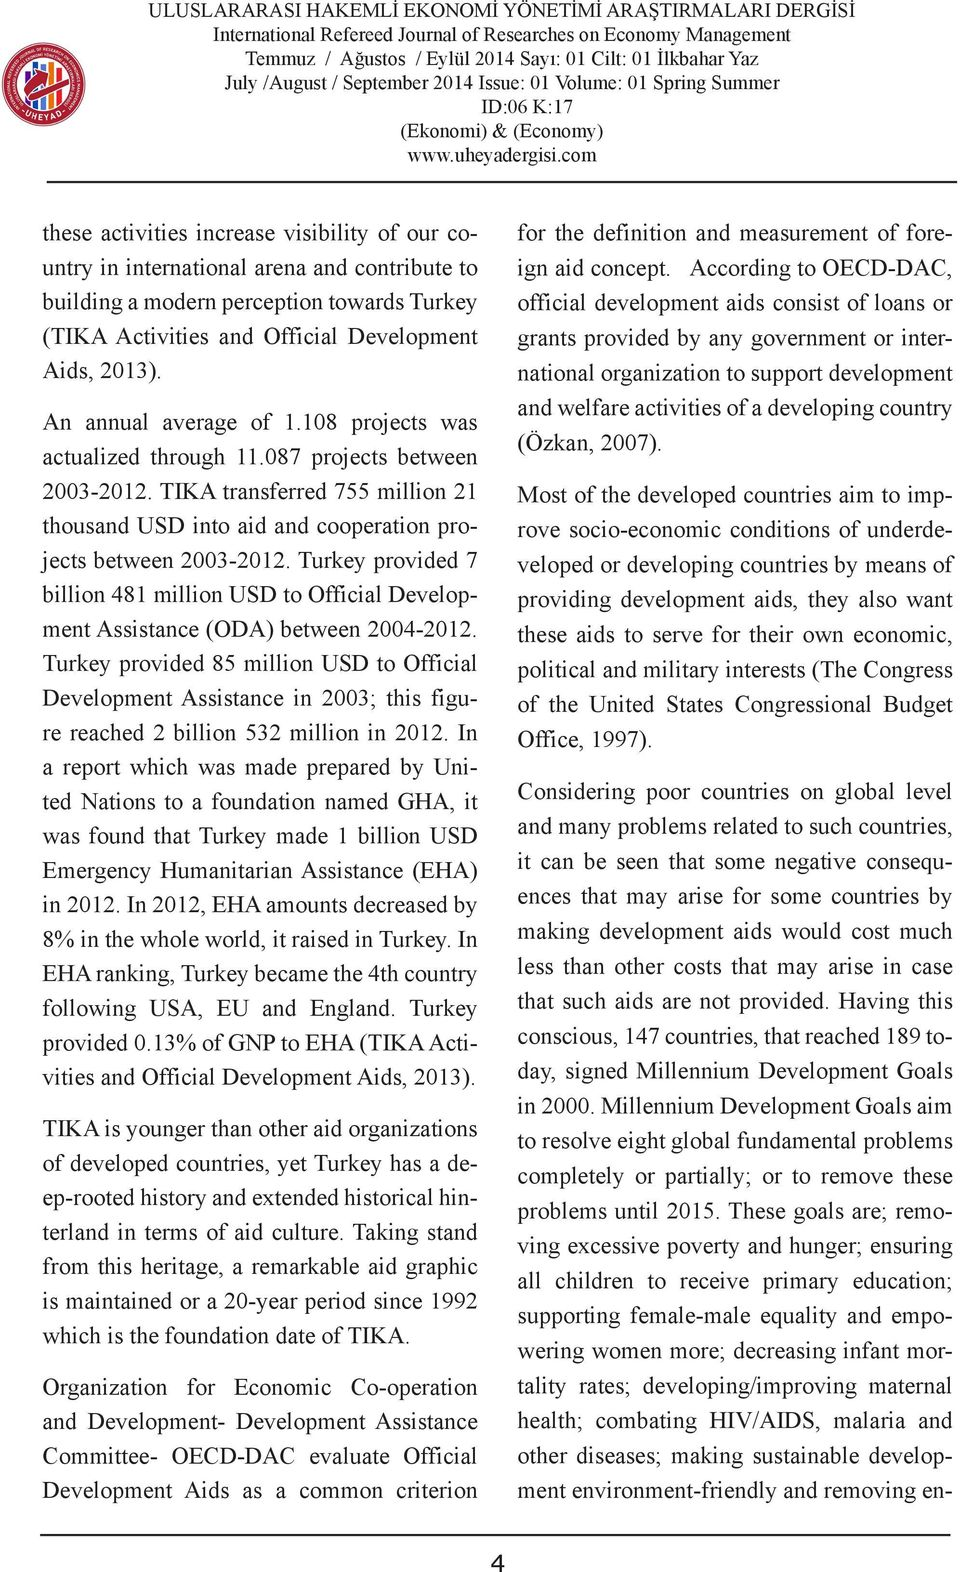 TIKA transferred 755 million 21 thousand USD into aid and cooperation projects between 2003-2012. Turkey provided 7 billion 481 million USD to Official Development Assistance (ODA) between 2004-2012.